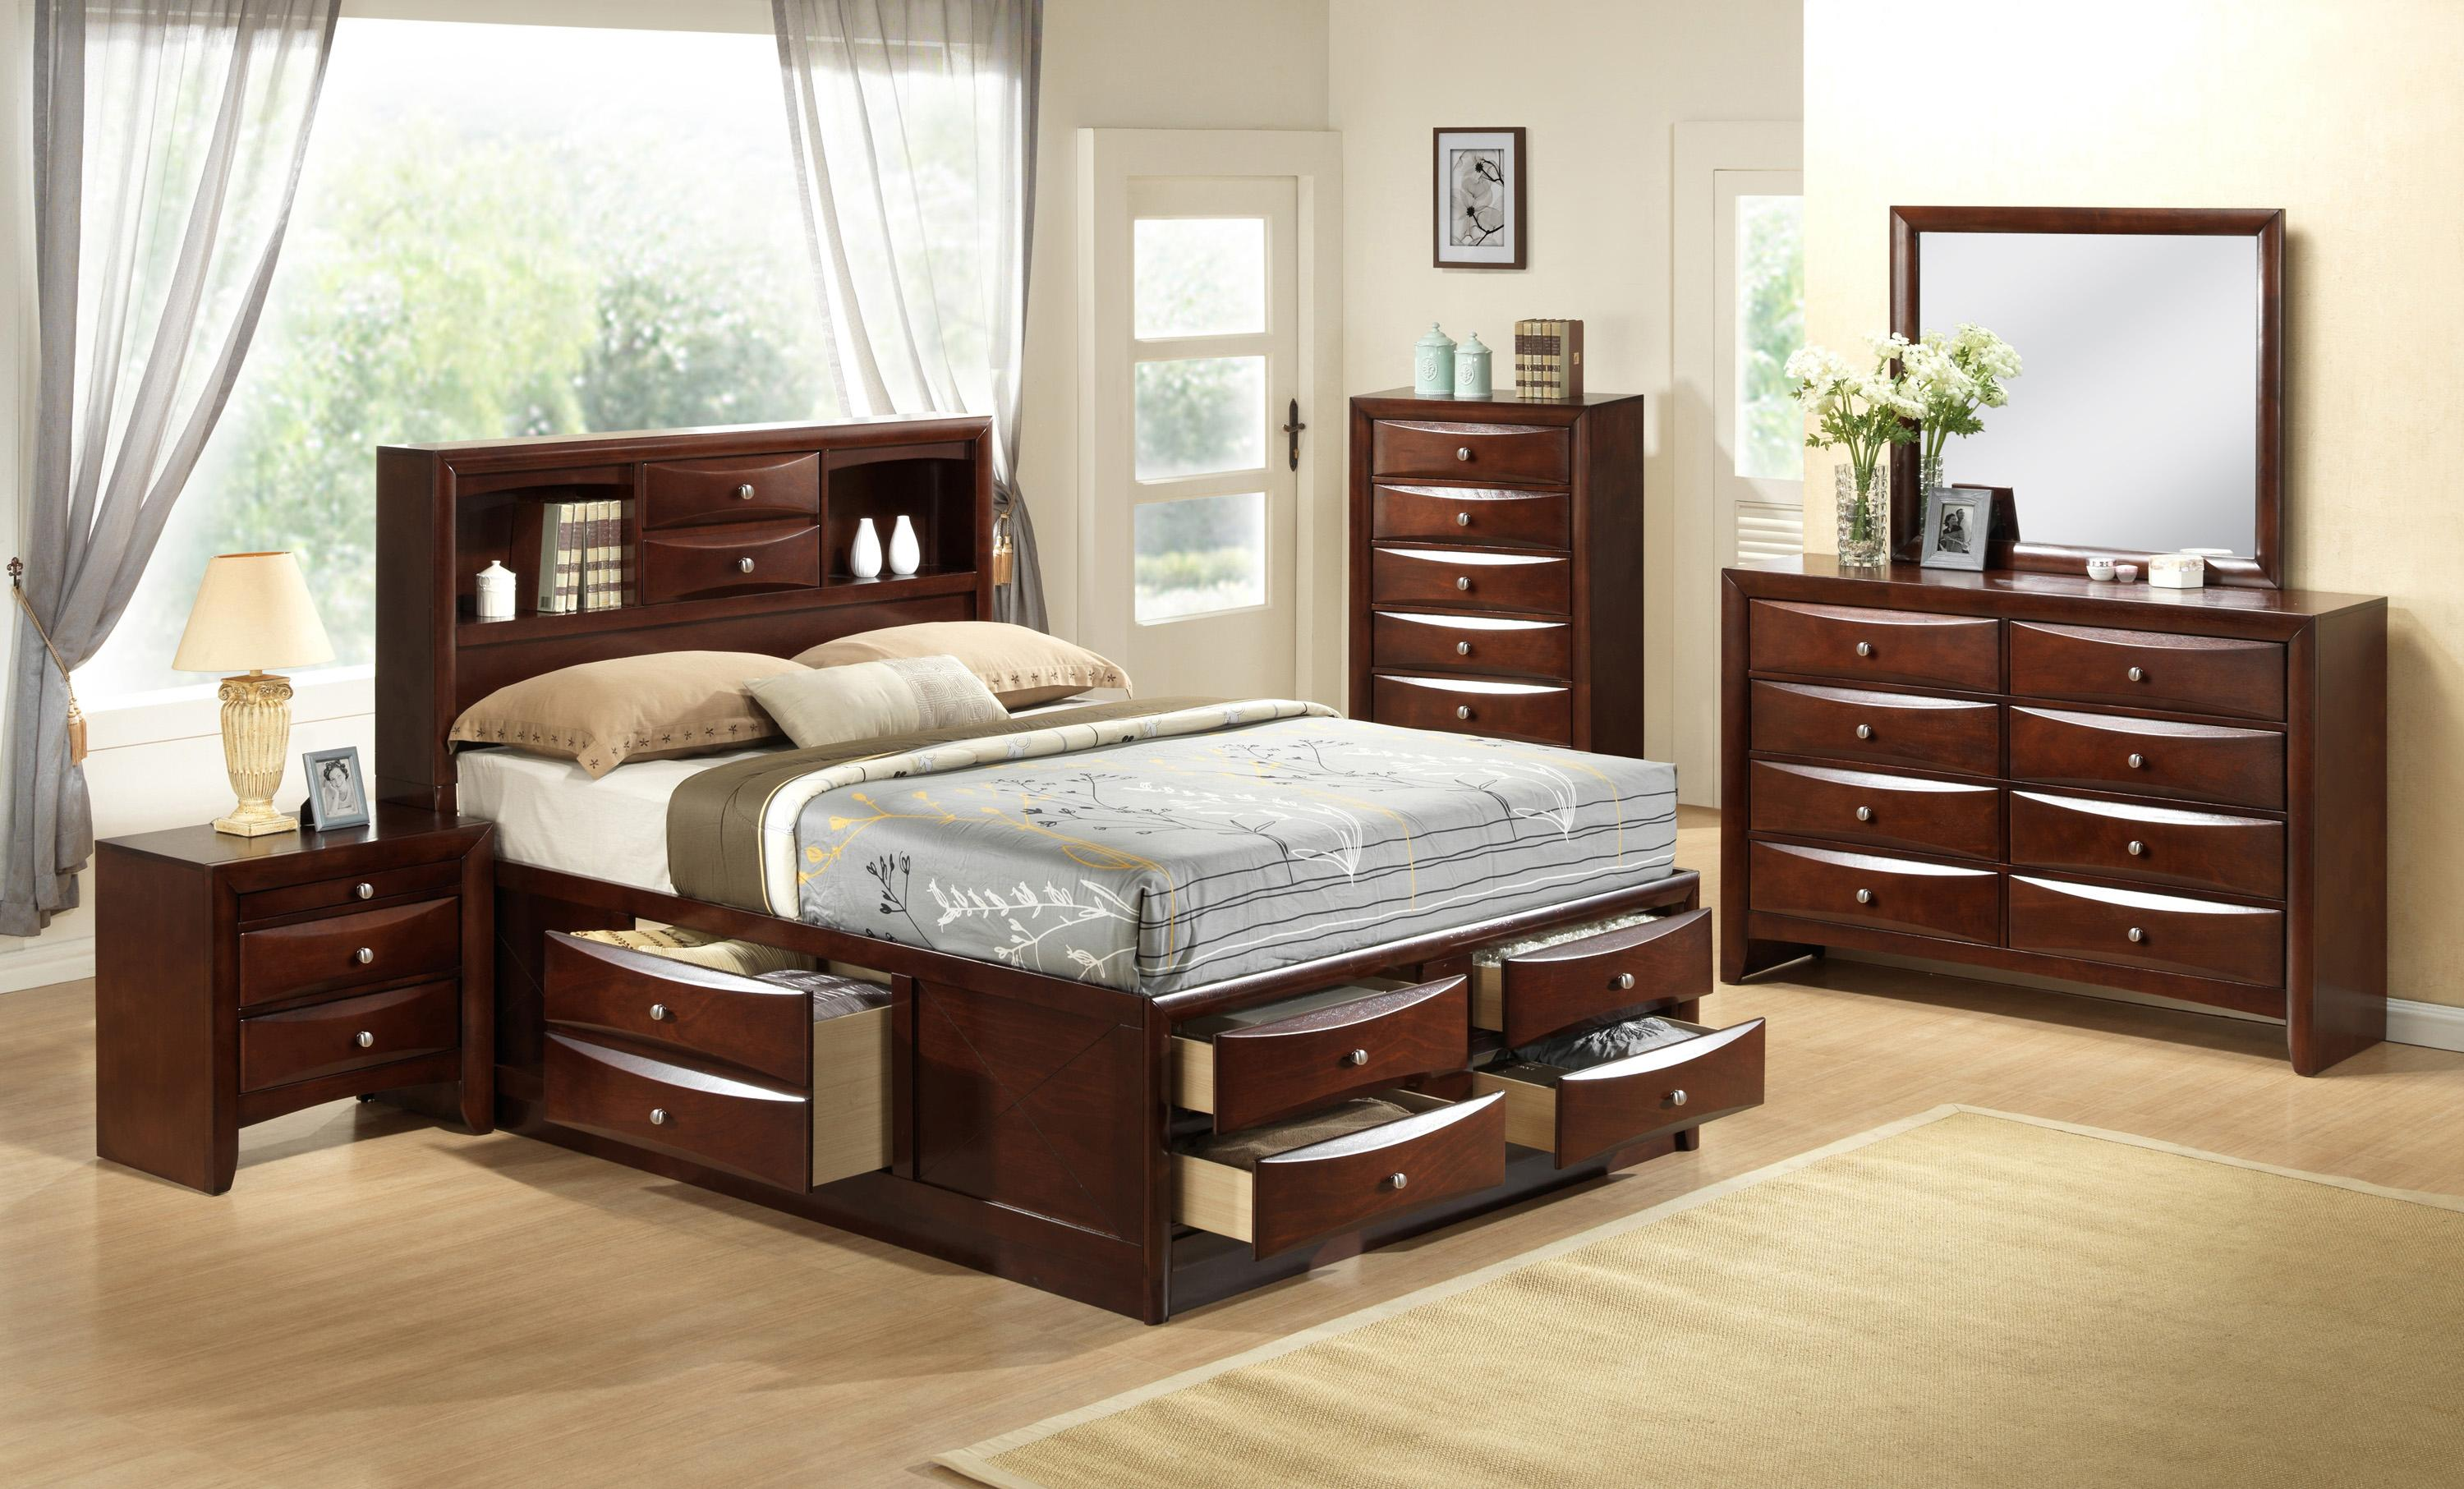 Crown Mark Emily King Bedroom Group - Item Number: B4200 K Bedroom Group 1